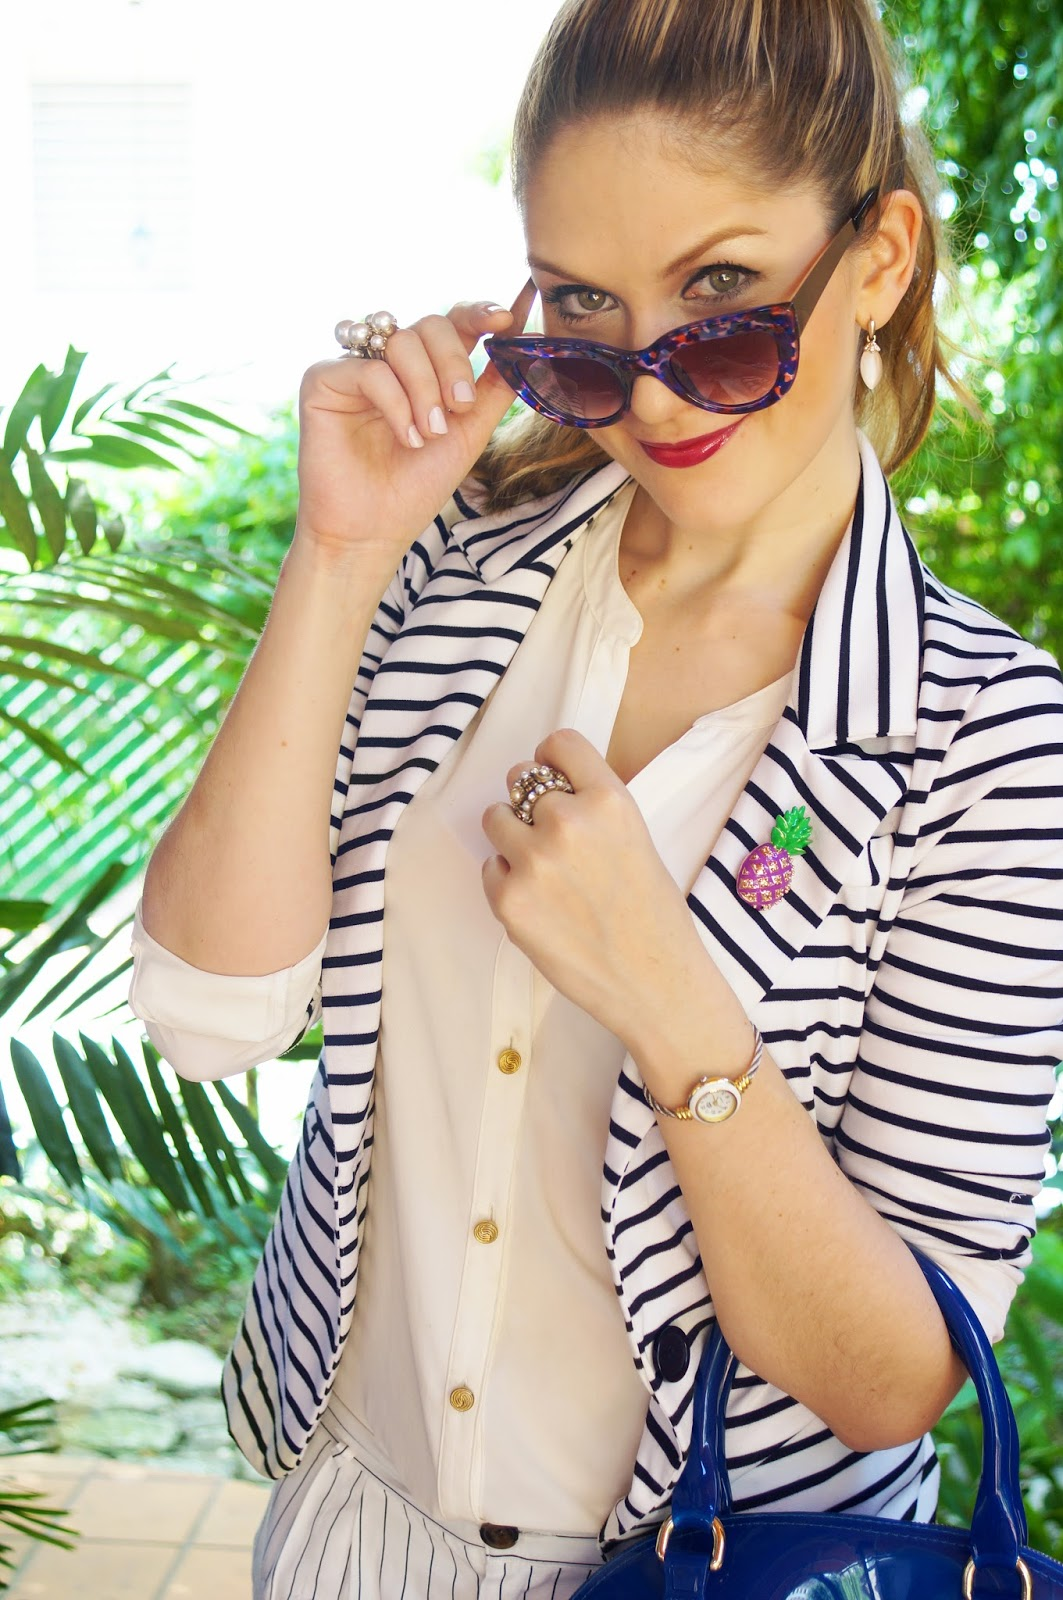 Combine your classic striped blazer with fun accessories to look more modern and chic!